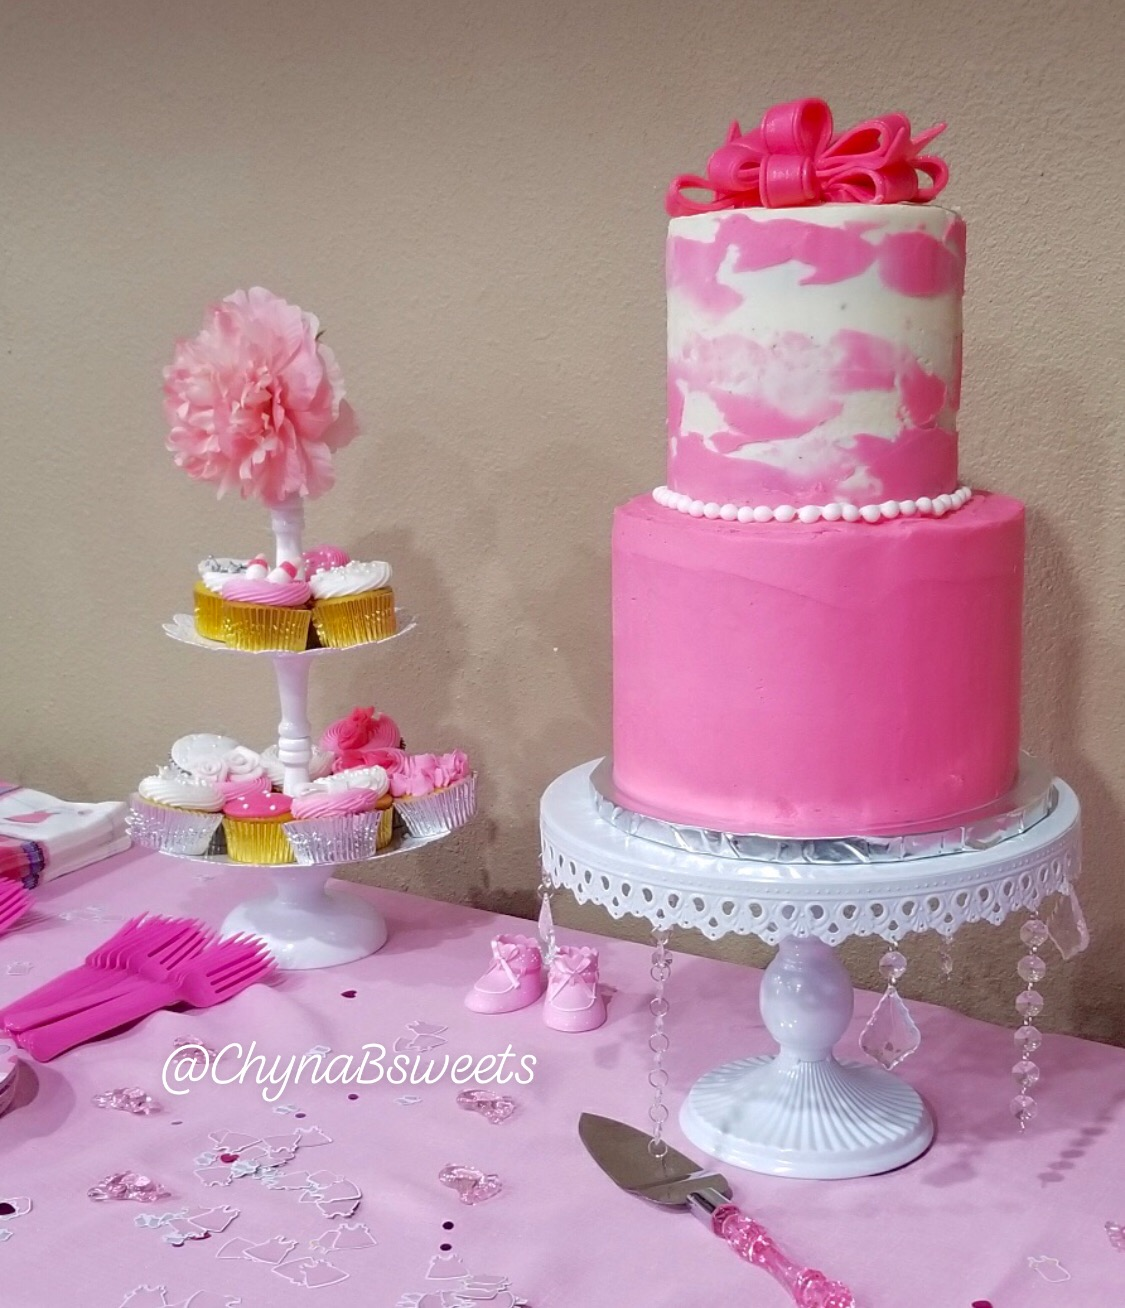 Baby Shower Cake: It's A Girl